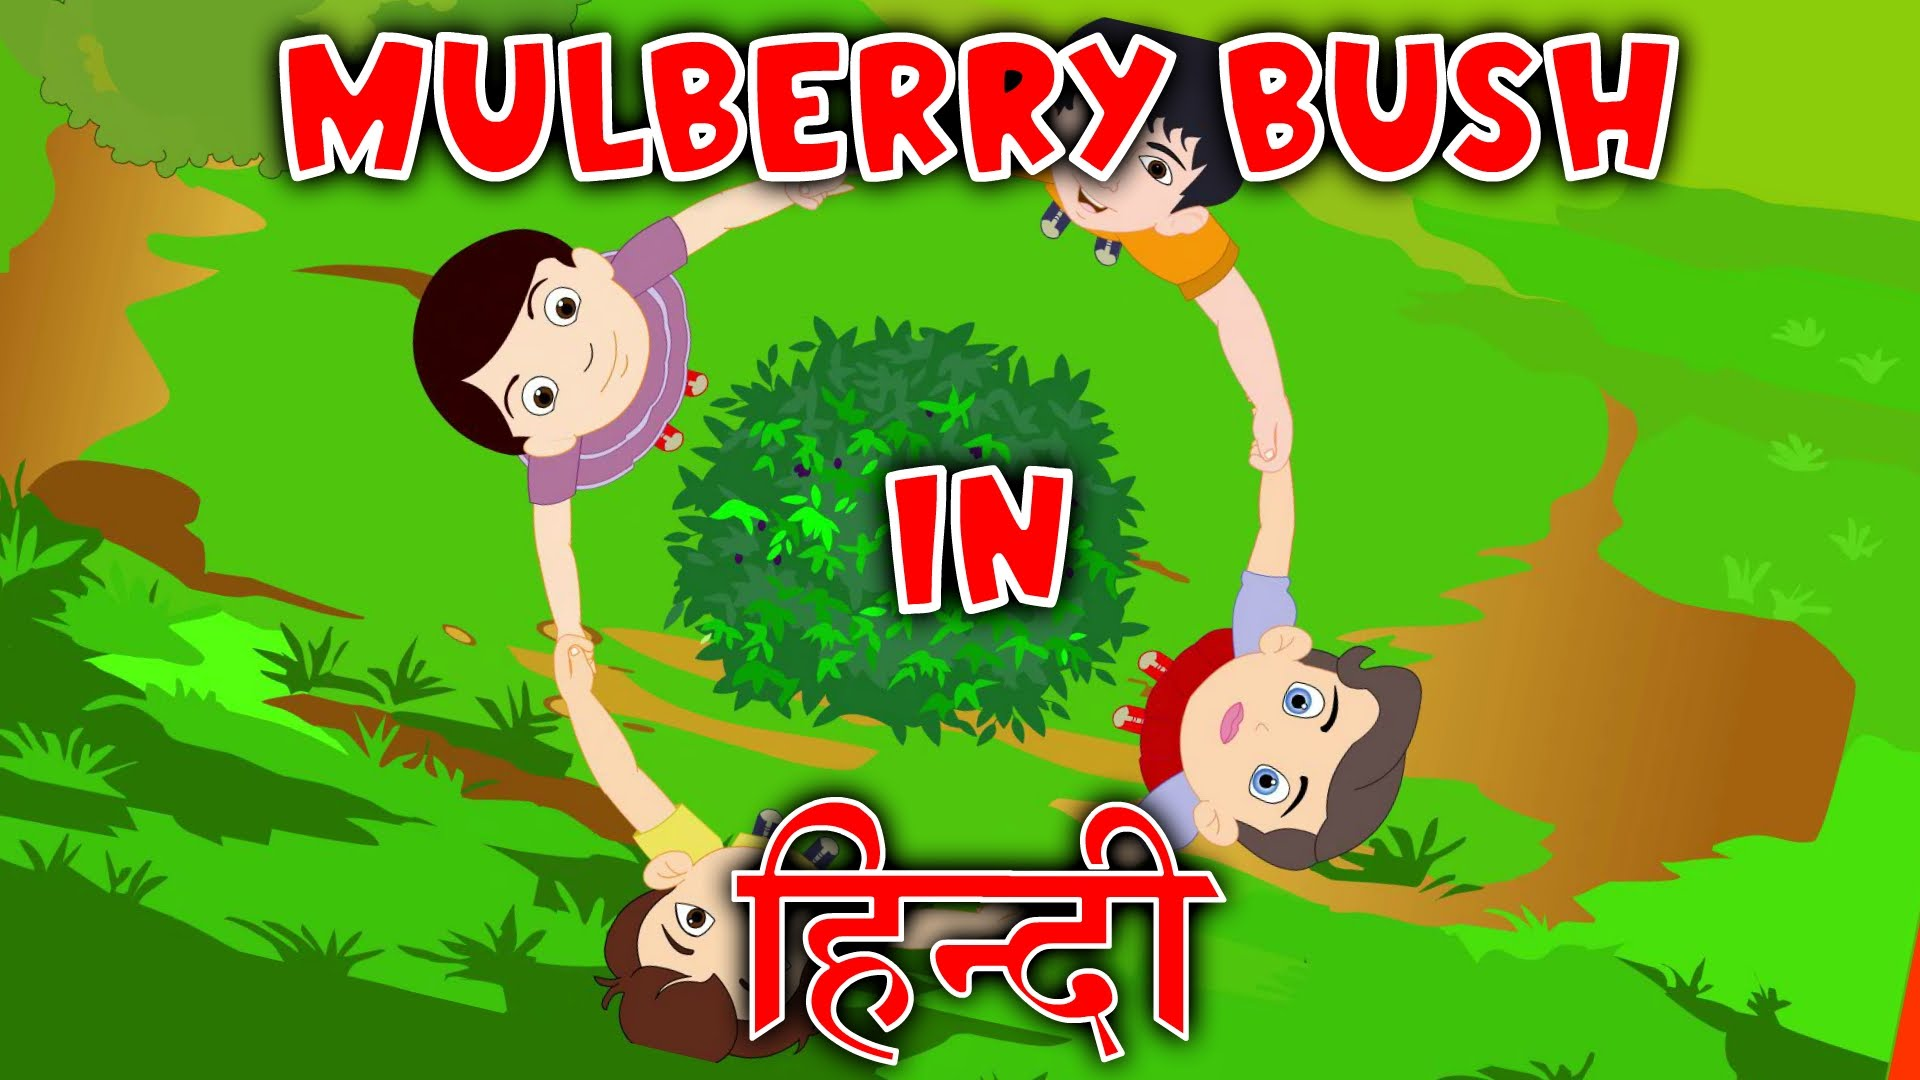 Bush clipart mulberry bush. Here we go round